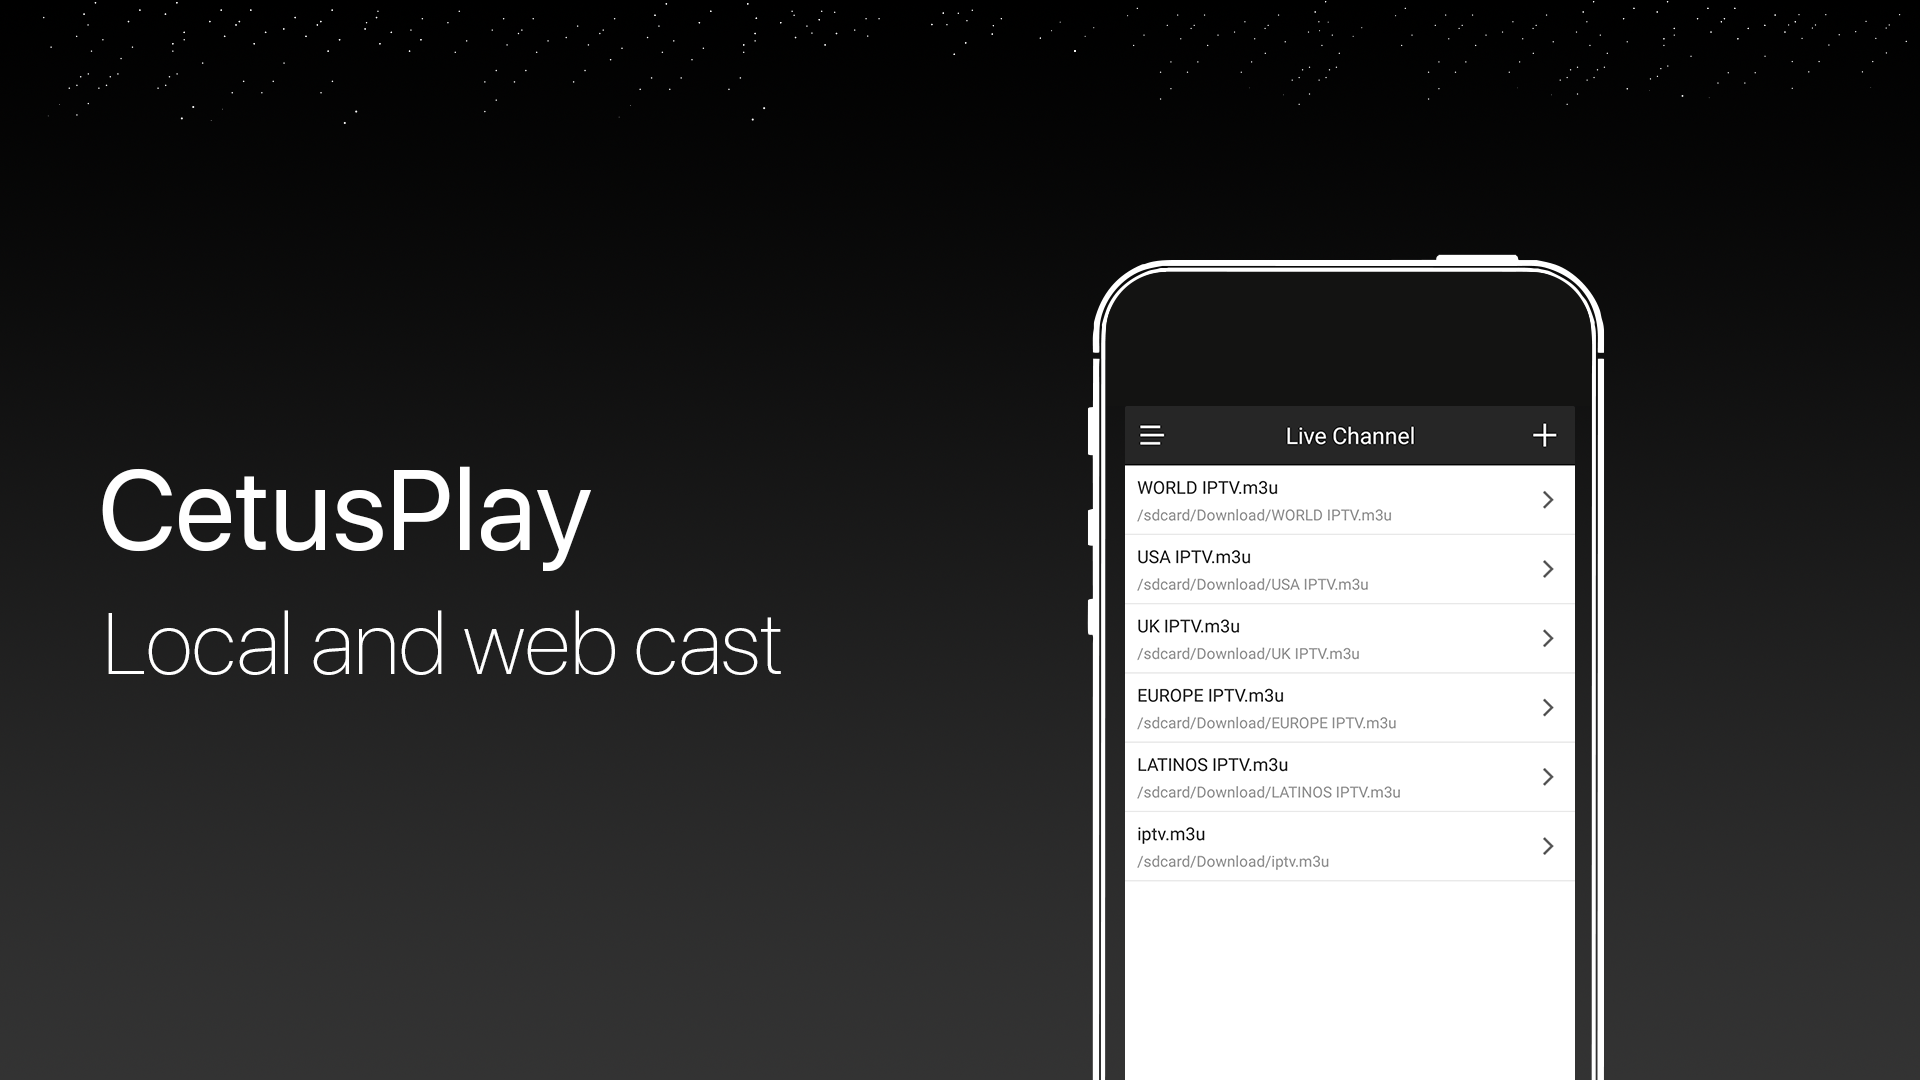 CetusPlay Fire TV/Stick Remote App: Amazon.es: Appstore para Android